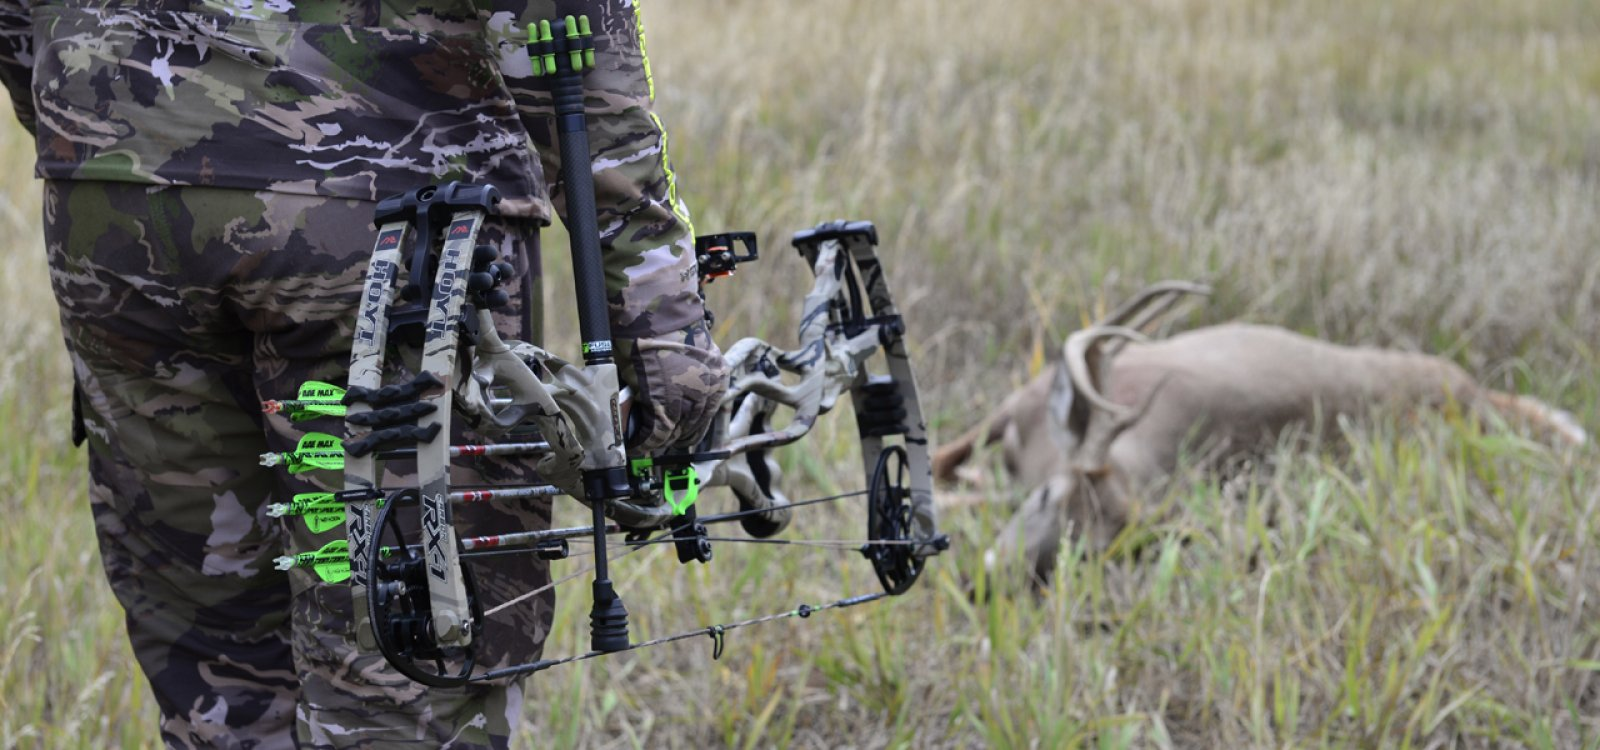 Compound Bow Safety and Warnings | Hoyt Archery